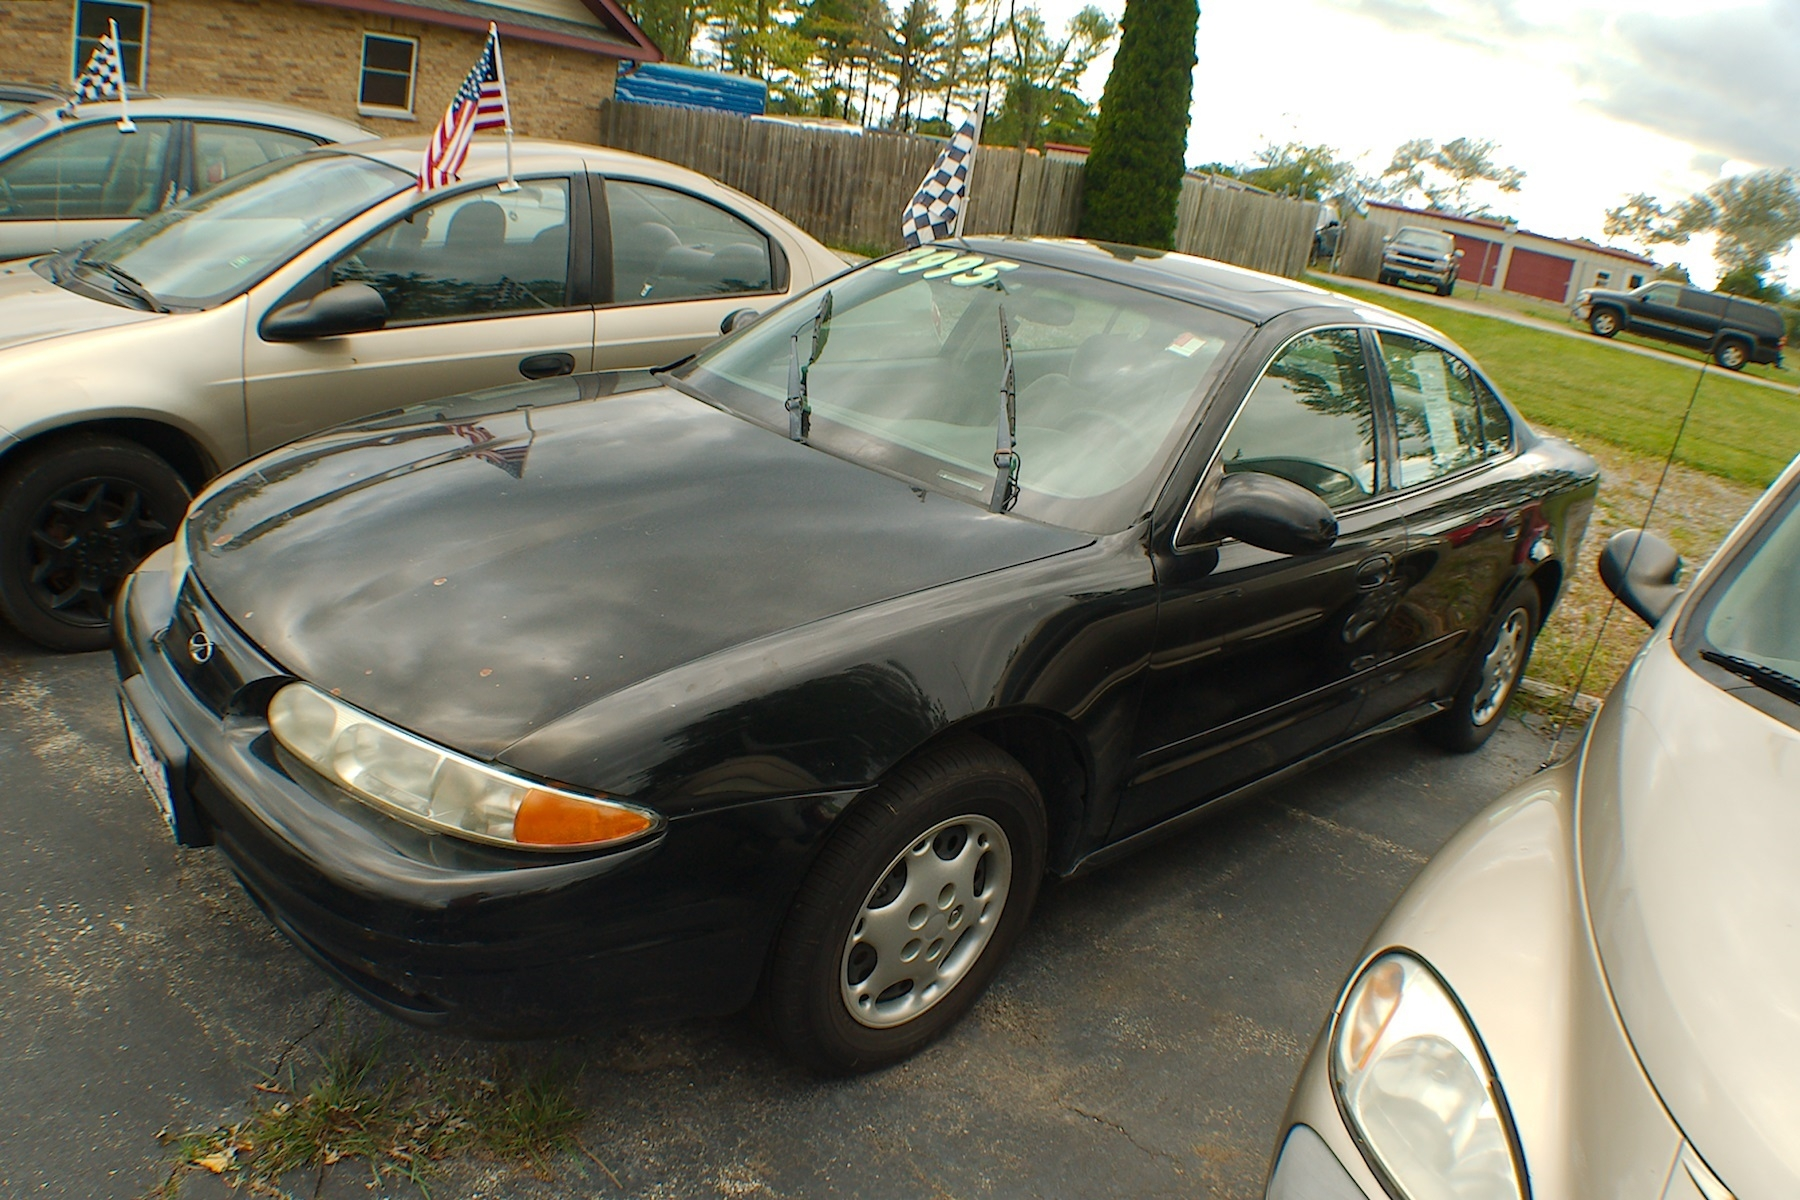 2001 Oldsmobile Alero Black Sedan Used Car Sale Antioch Zion Waukegan Lake County Illinois